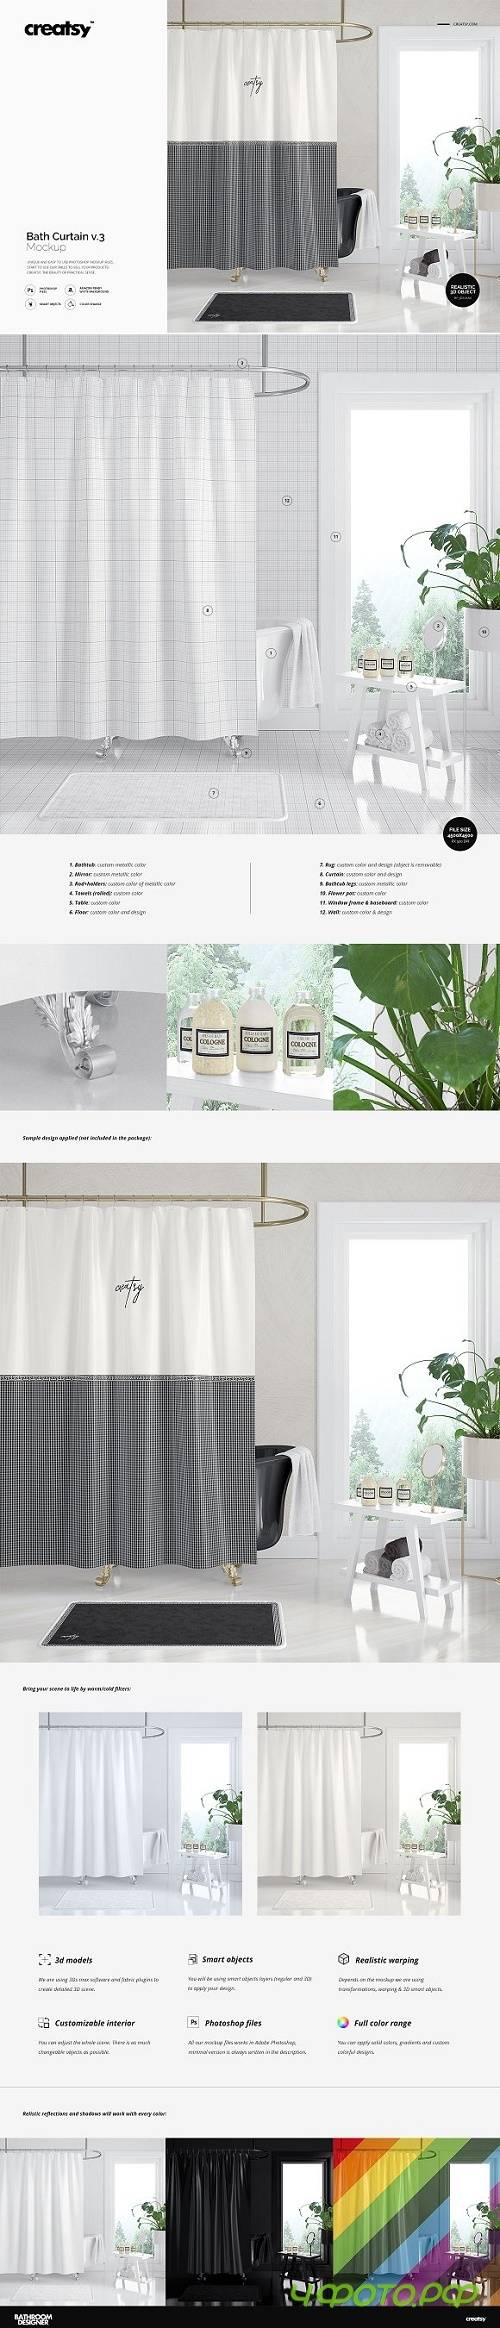 Bath Curtain Mockup 3 2437579